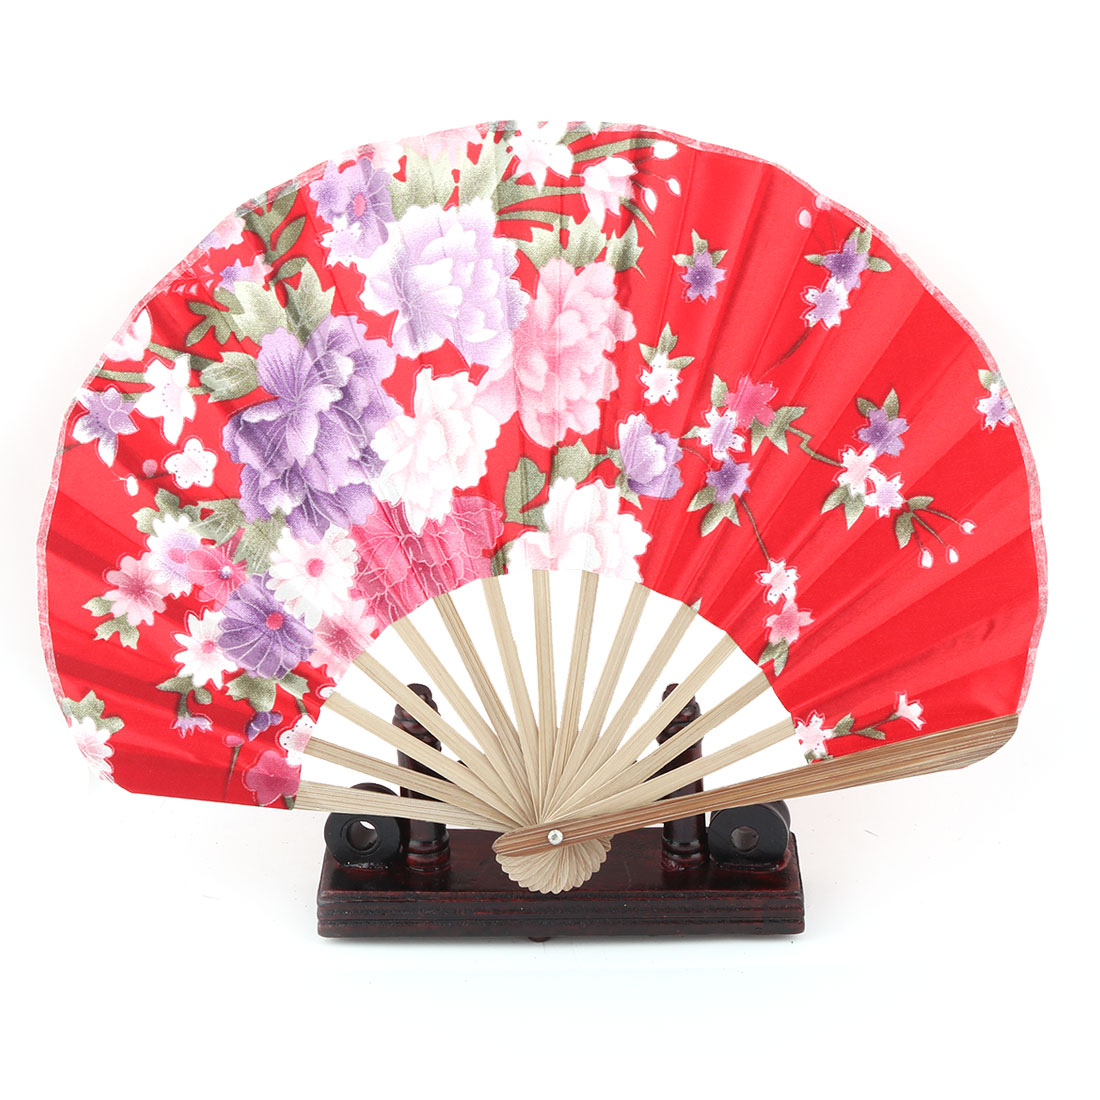 Bamboo Flower Pattern Chinese Style Folding Hand Fan Display Holder Red 2 in 1